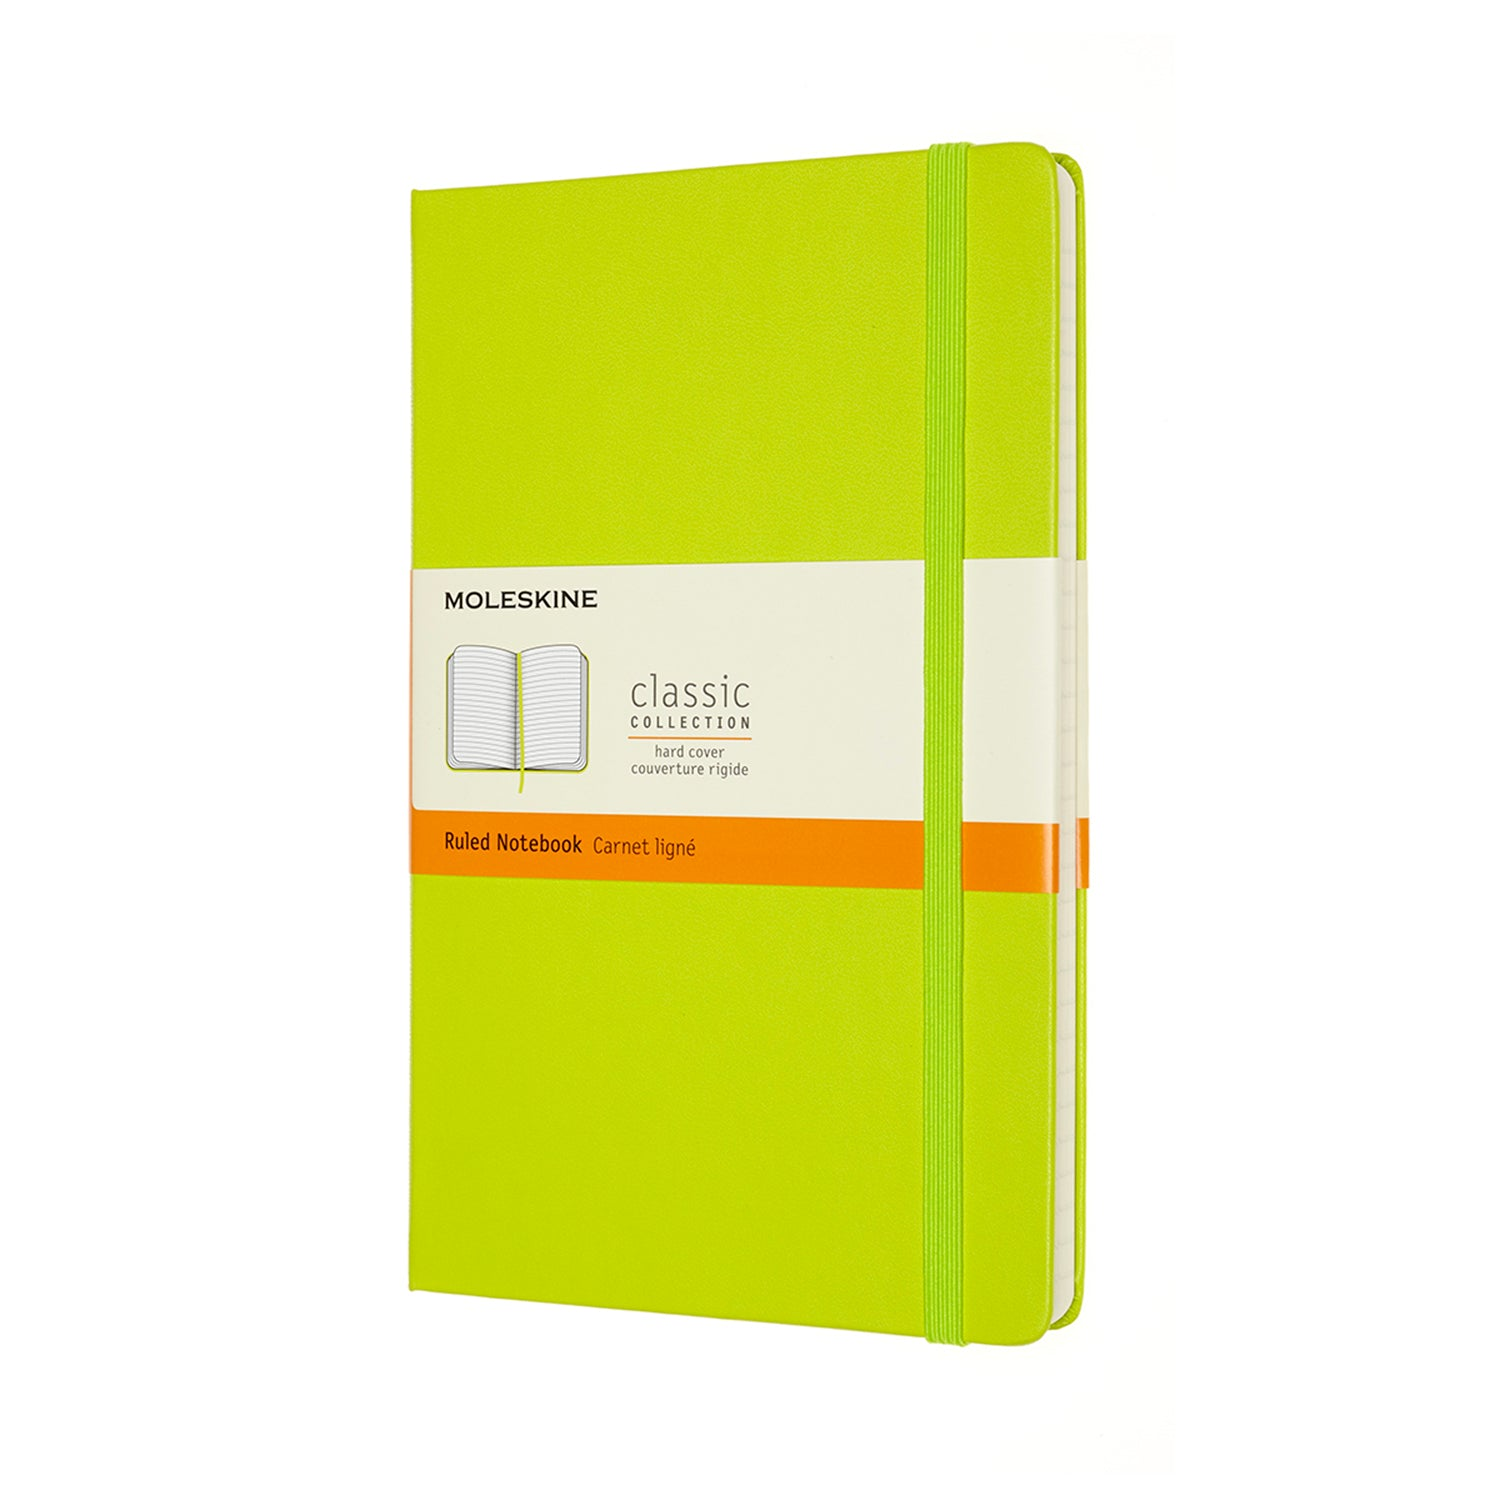 Large Light Green Hard Cover Moleskine Ruled Notebook